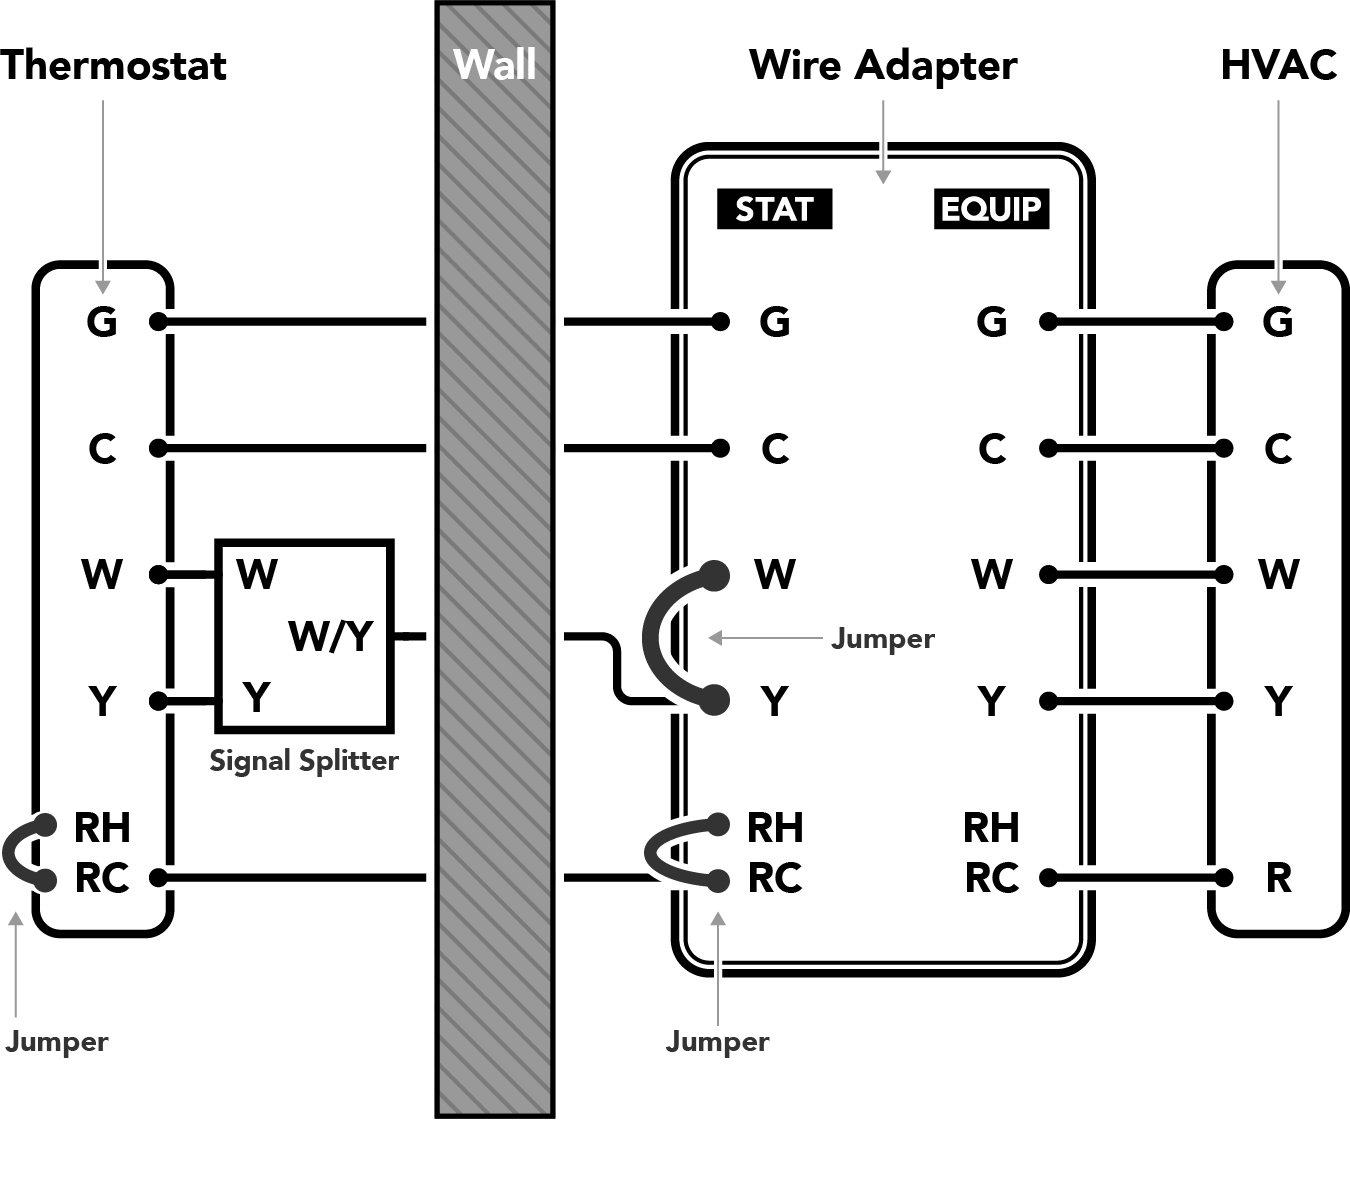 hight resolution of  ac 4 wires diagram 01 conventional heat and ac 4 wires 2015 11 17 v4 conventional heat